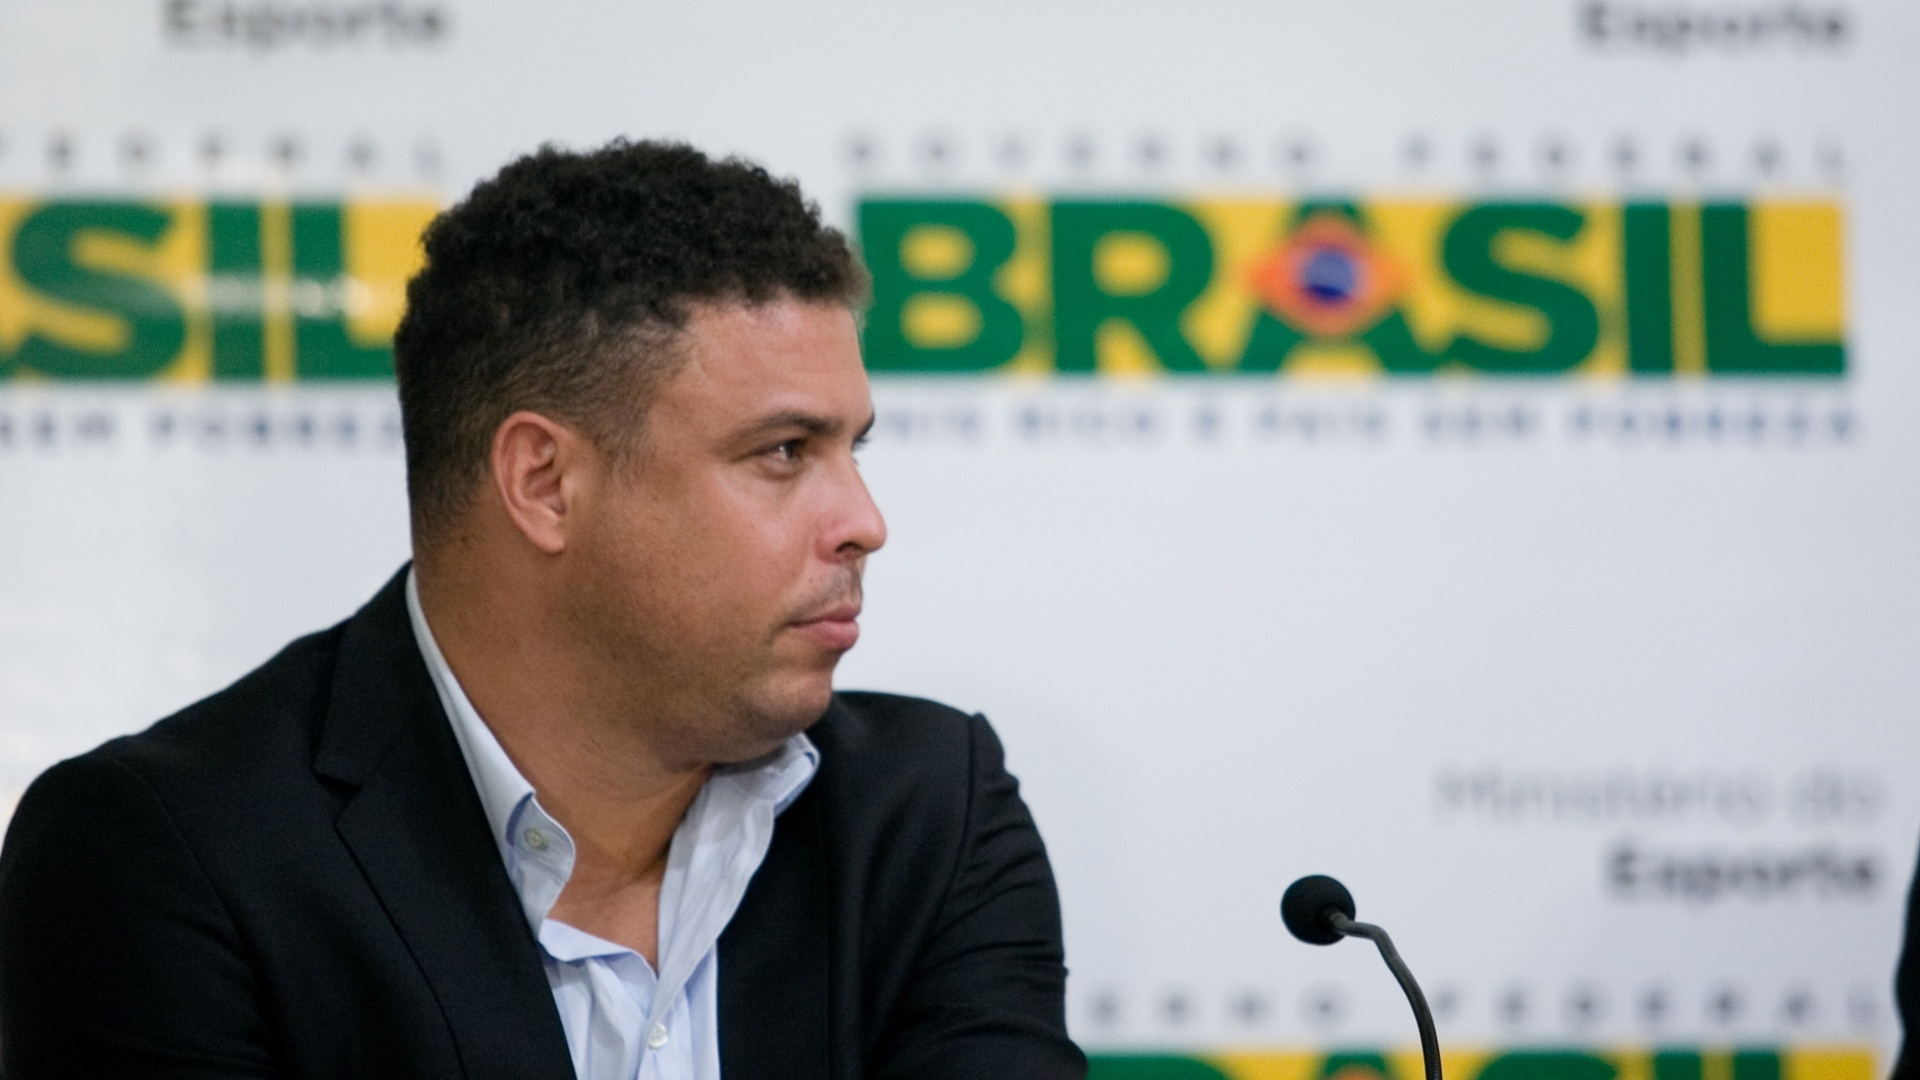 Ronaldo participa de entrevista coletiva com secretrio geral da Fifa, Jerme Valcke, e ministro Aldo Rebelo para falar sobre preparativos para a Copa do Mundo de 2014